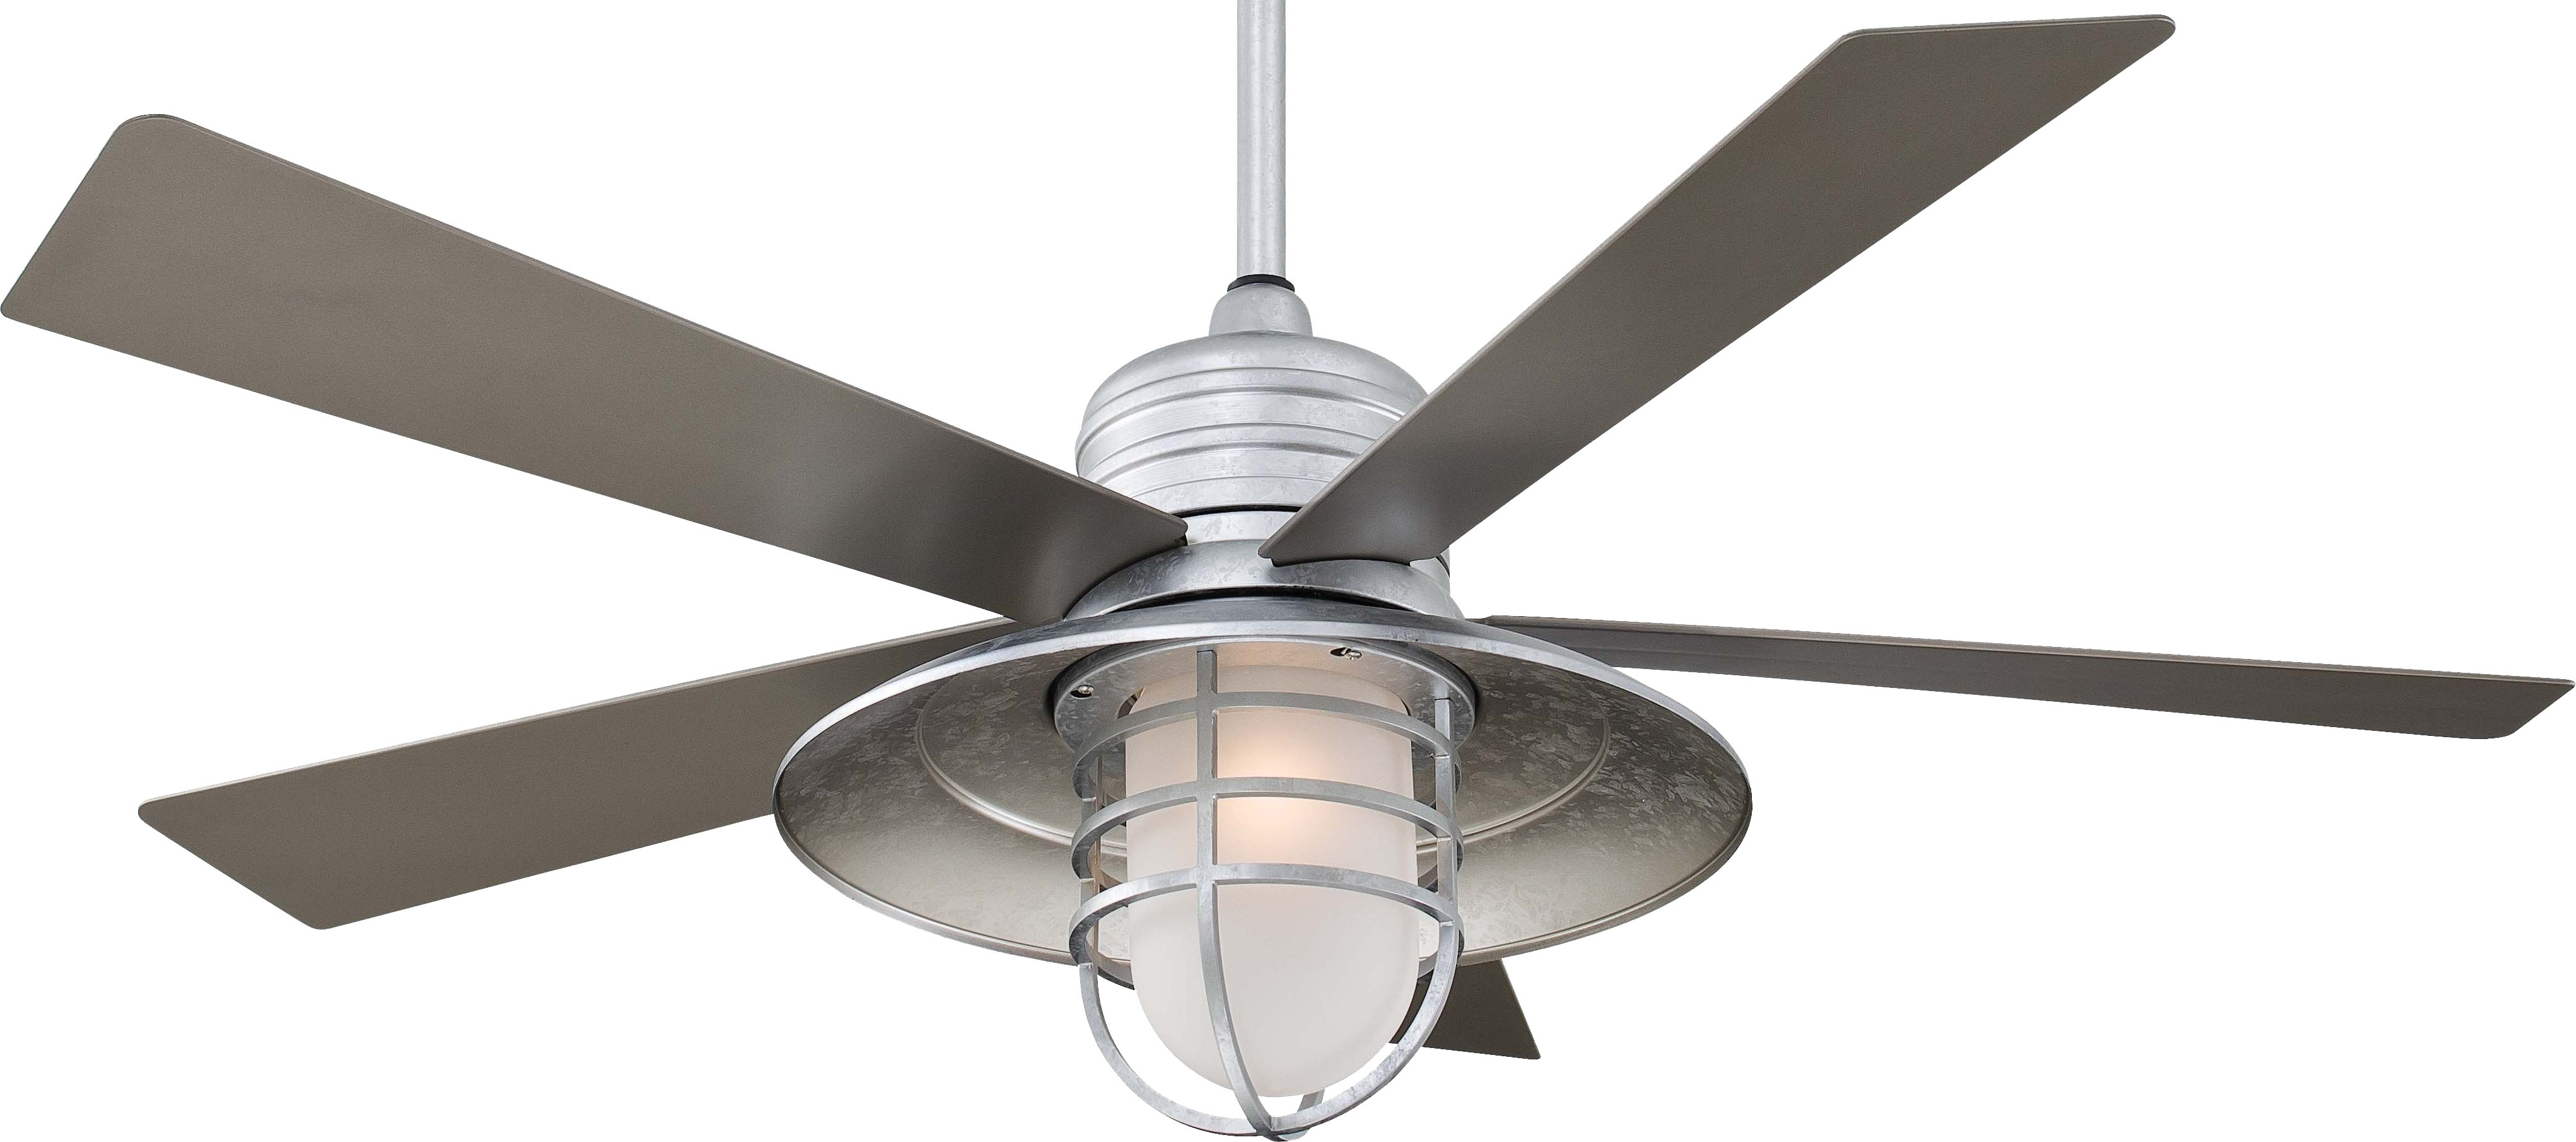 2019 Wet Rated Ceiling Fans With Light Outstanding Outdoor Ceiling Fan Throughout Wet Rated Outdoor Ceiling Fans With Light (View 8 of 20)